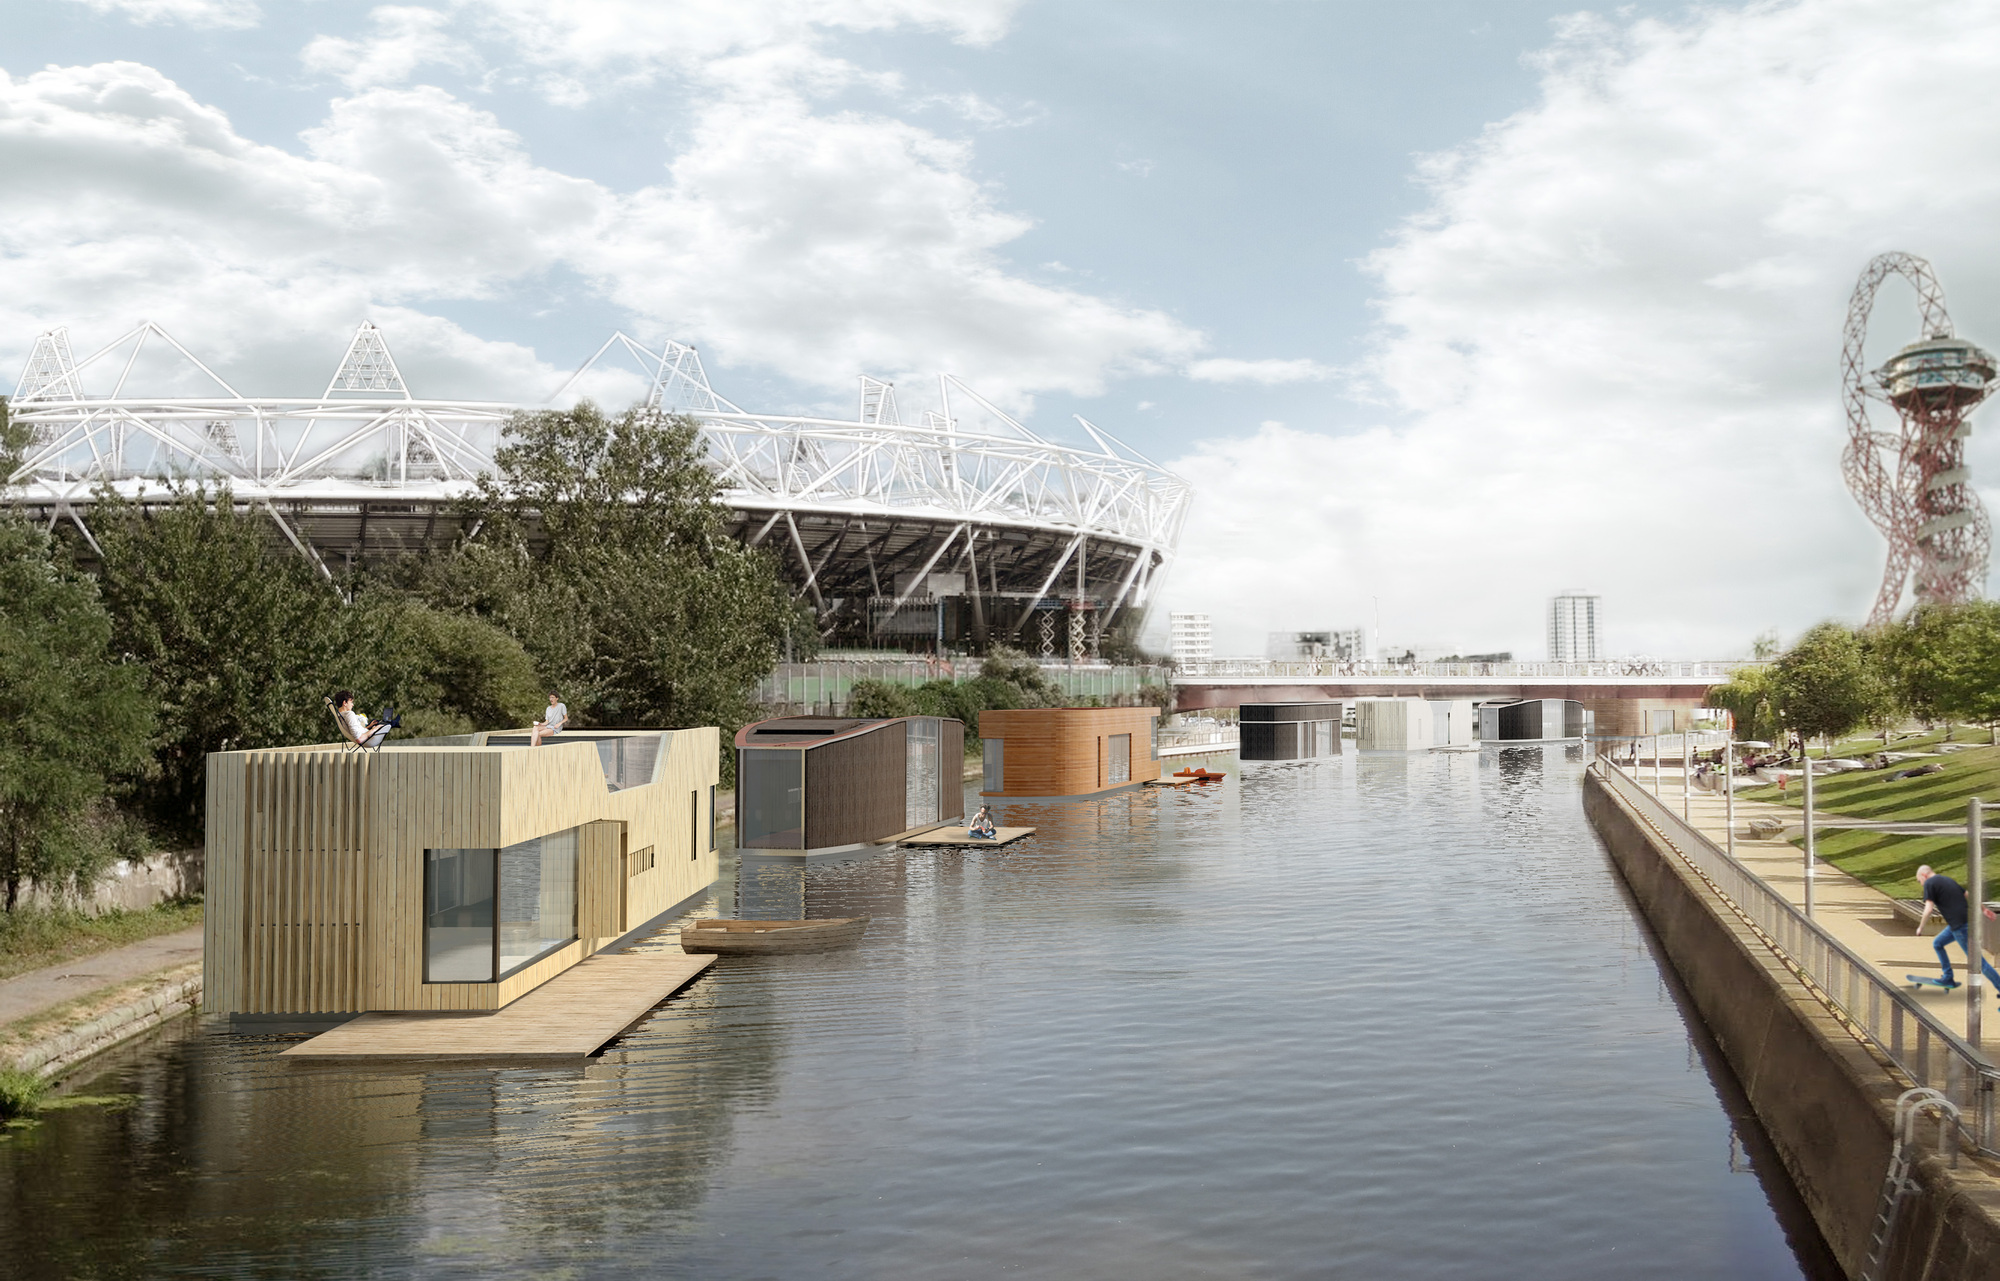 100 Ideas For Solving London S Housing Crisis According To New London Architecture Archdaily